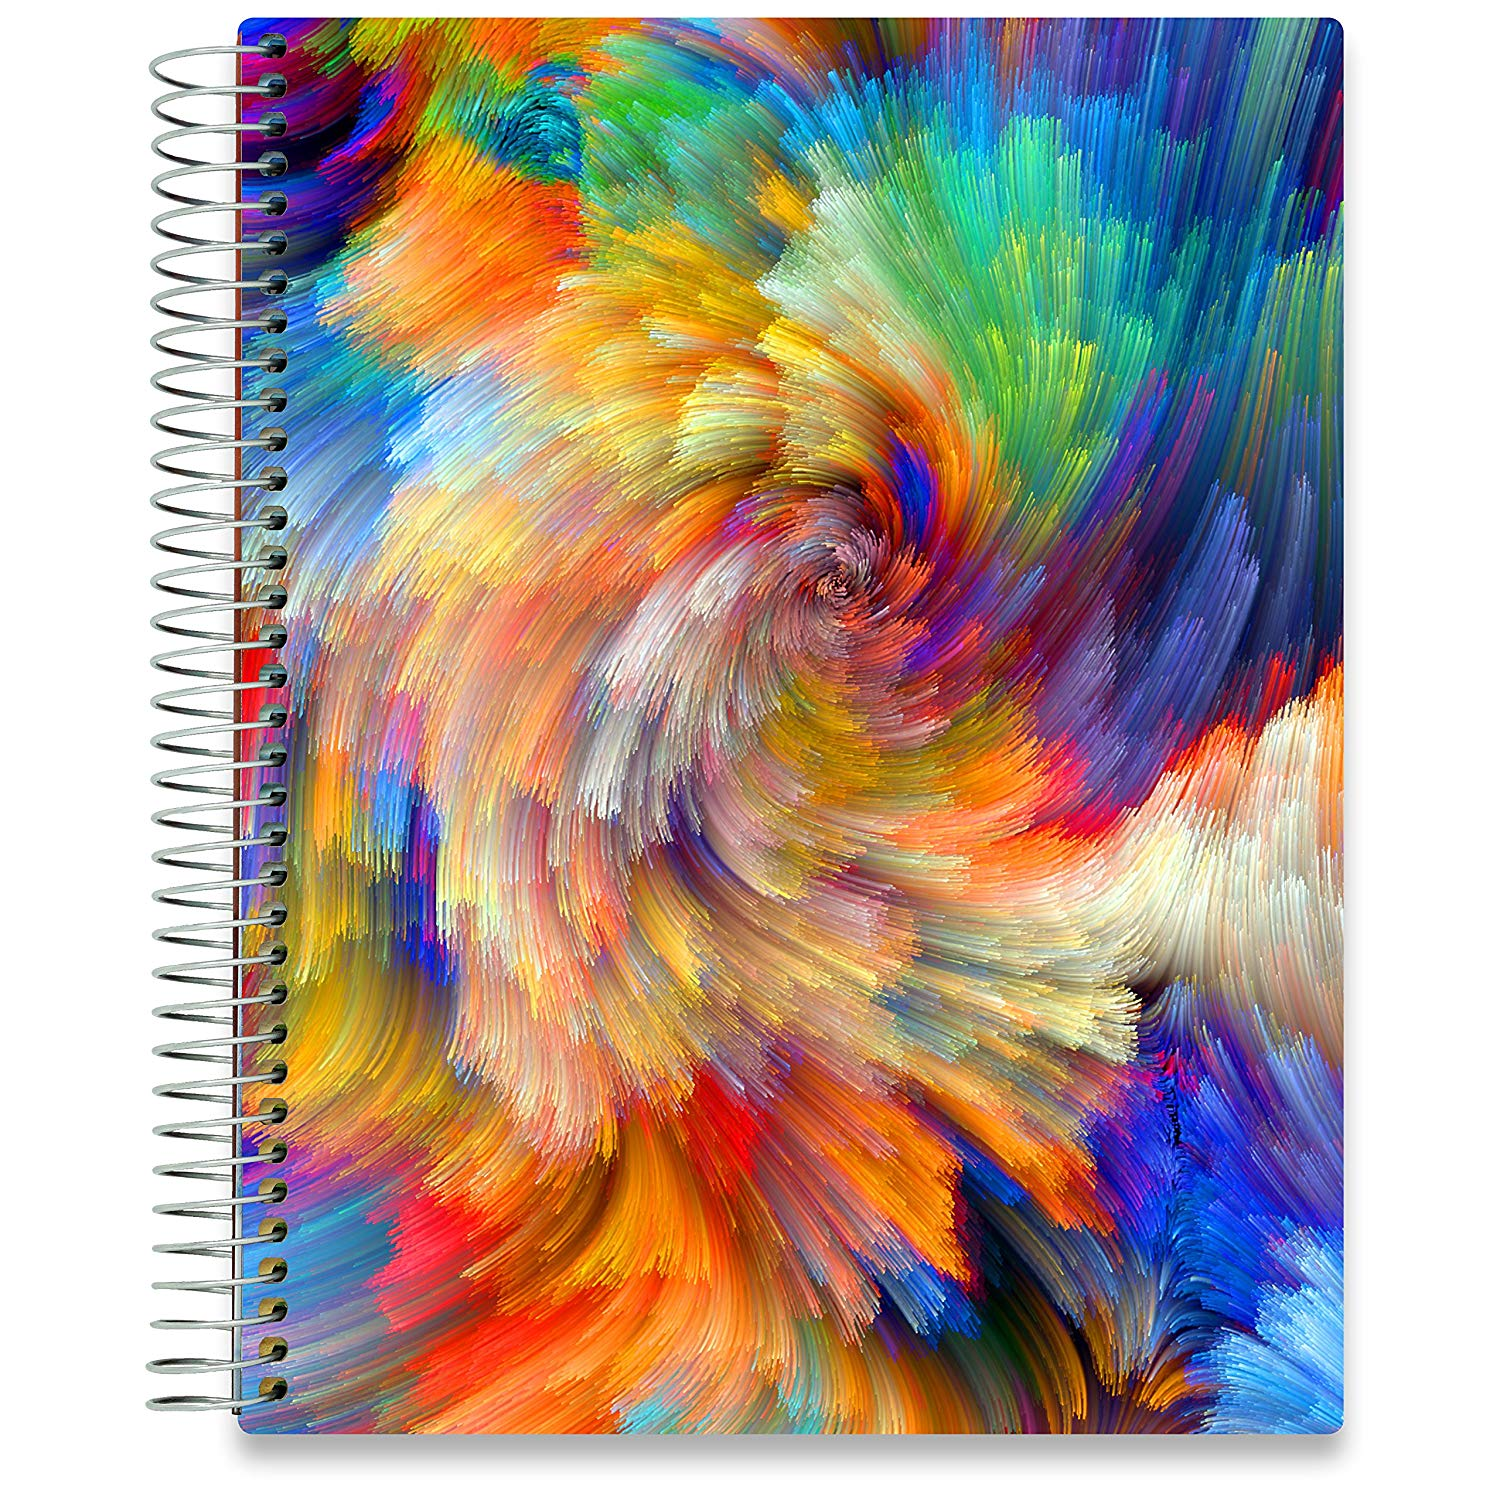 2019 Dated Planner - Colorsplash-Office Product-Tools4Wisdom